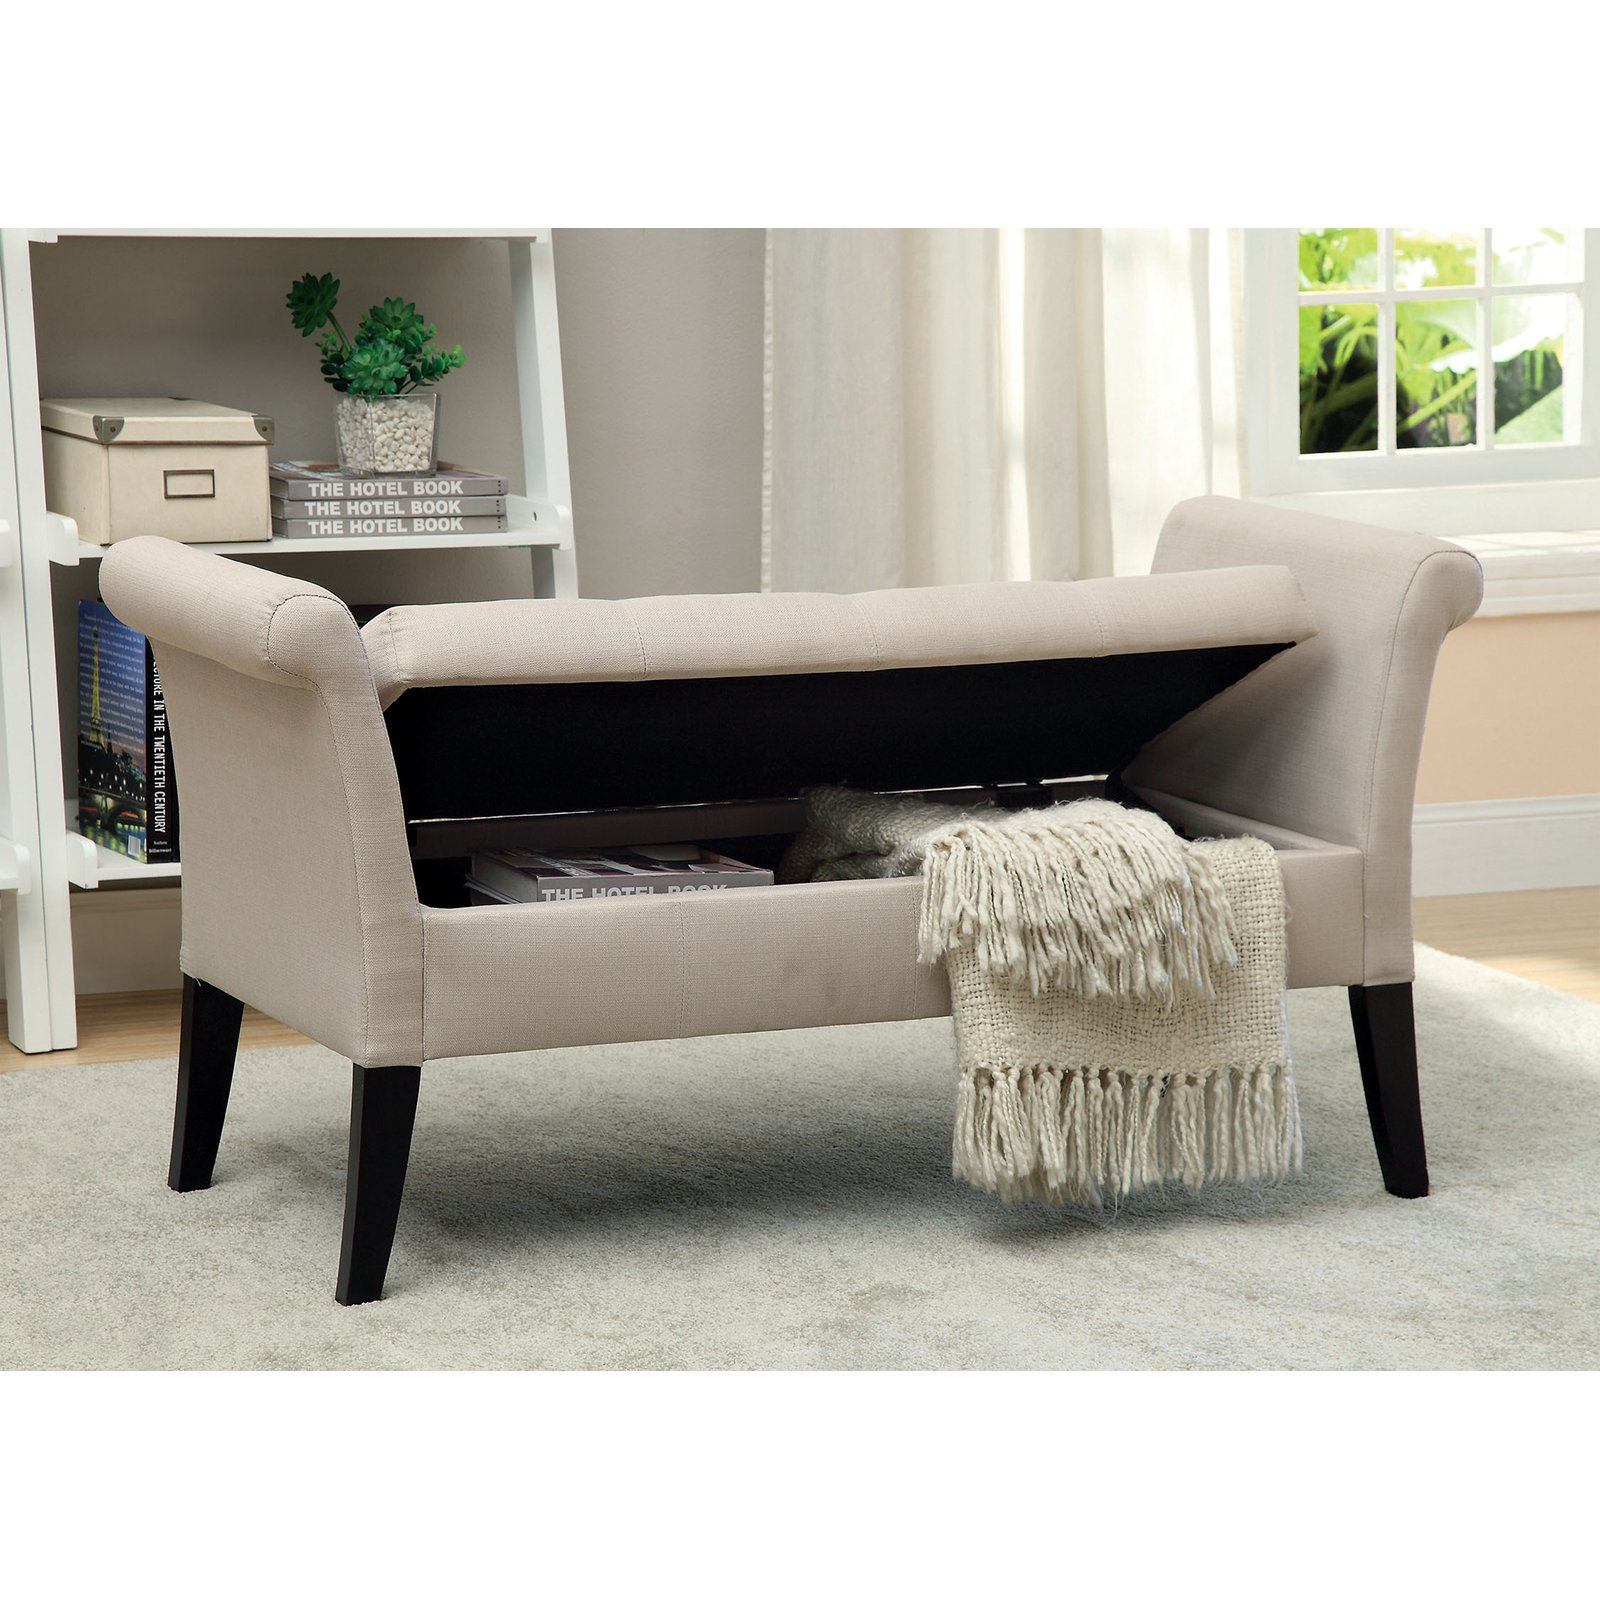 Pleasant Furniture Of America Alistar Fabric Upholstered Storage Accent Bench Dailytribune Chair Design For Home Dailytribuneorg